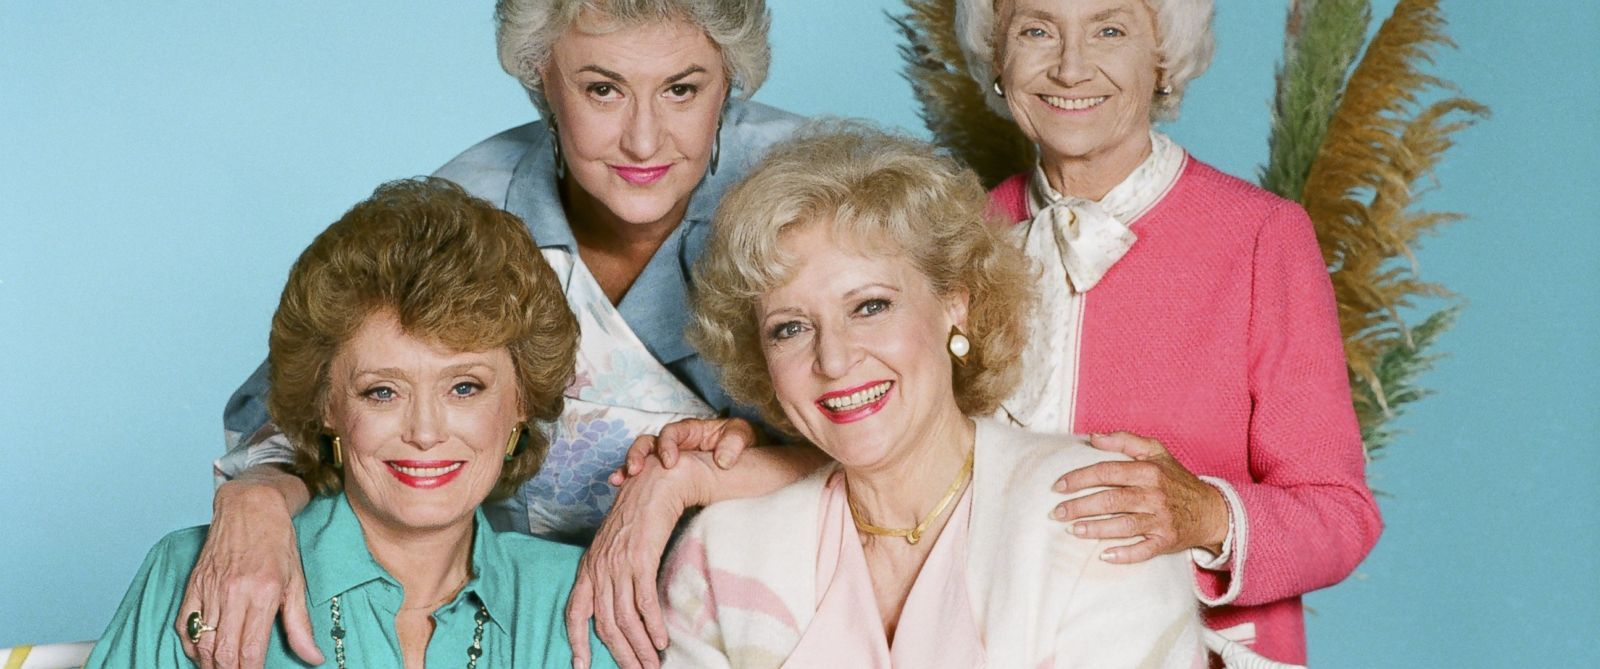 """PHOTO: From left, Rue McClanahan as Blanche Devereaux, Bea Arthur as Dorothy Petrillo Zbornak, Betty White as Rose Nylund, and Estelle Getty as Sophia Petrillo are pictured in this """"Golden Girls"""" promo photo."""